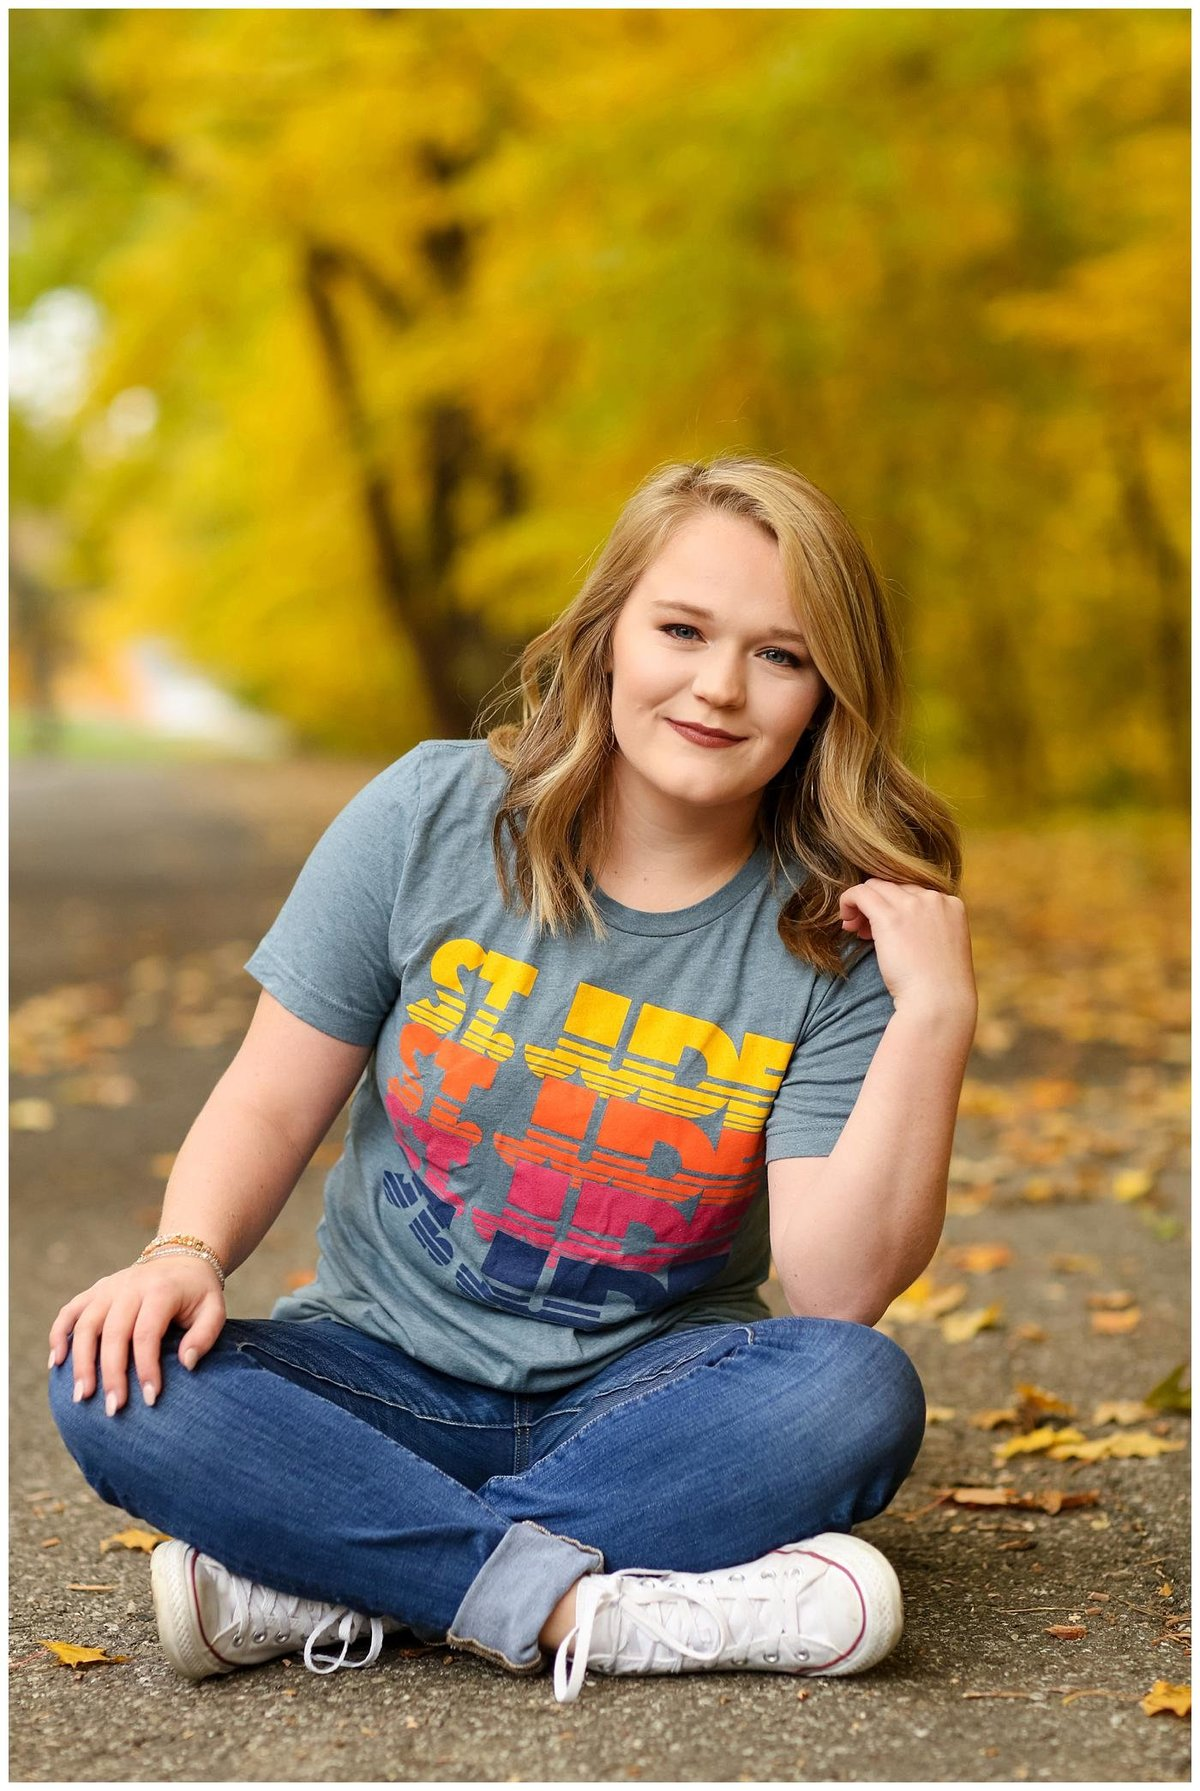 Central Illinois Senior Photographer | Macomb, IL Senior Photographer |  Creative Touch Photography_4866